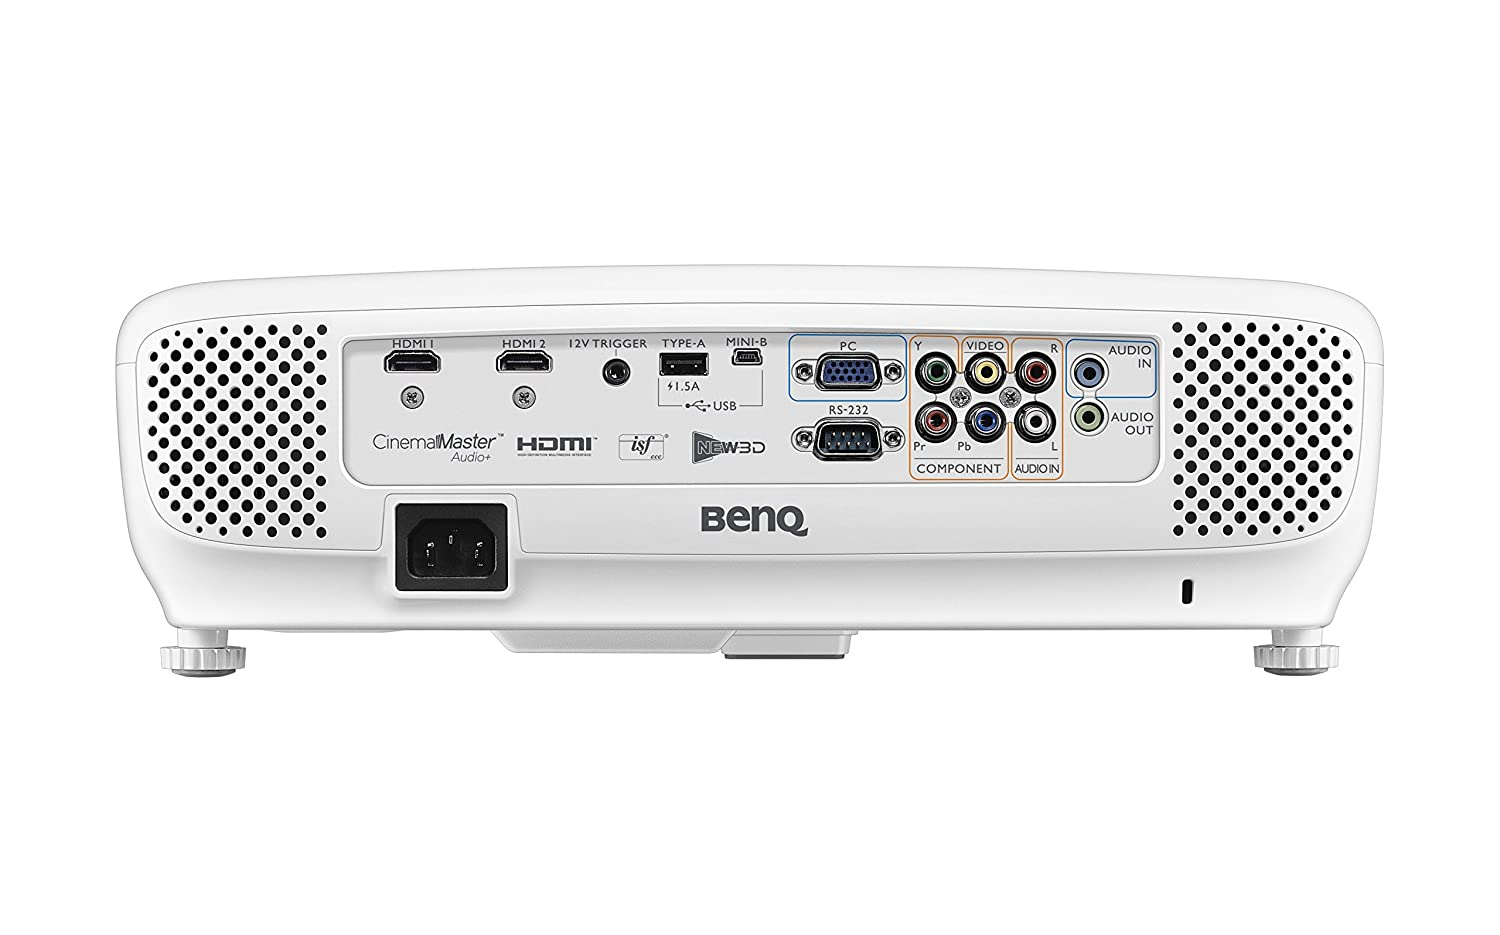 Benq Dlp Hd Projector Ht2050 3d Home Theater Baby Boomer 600w Dual 8quot Subwoofer Electronicswoot With All Glass Cinema Grade Lens And Rgbrgb Color Wheel Electronics